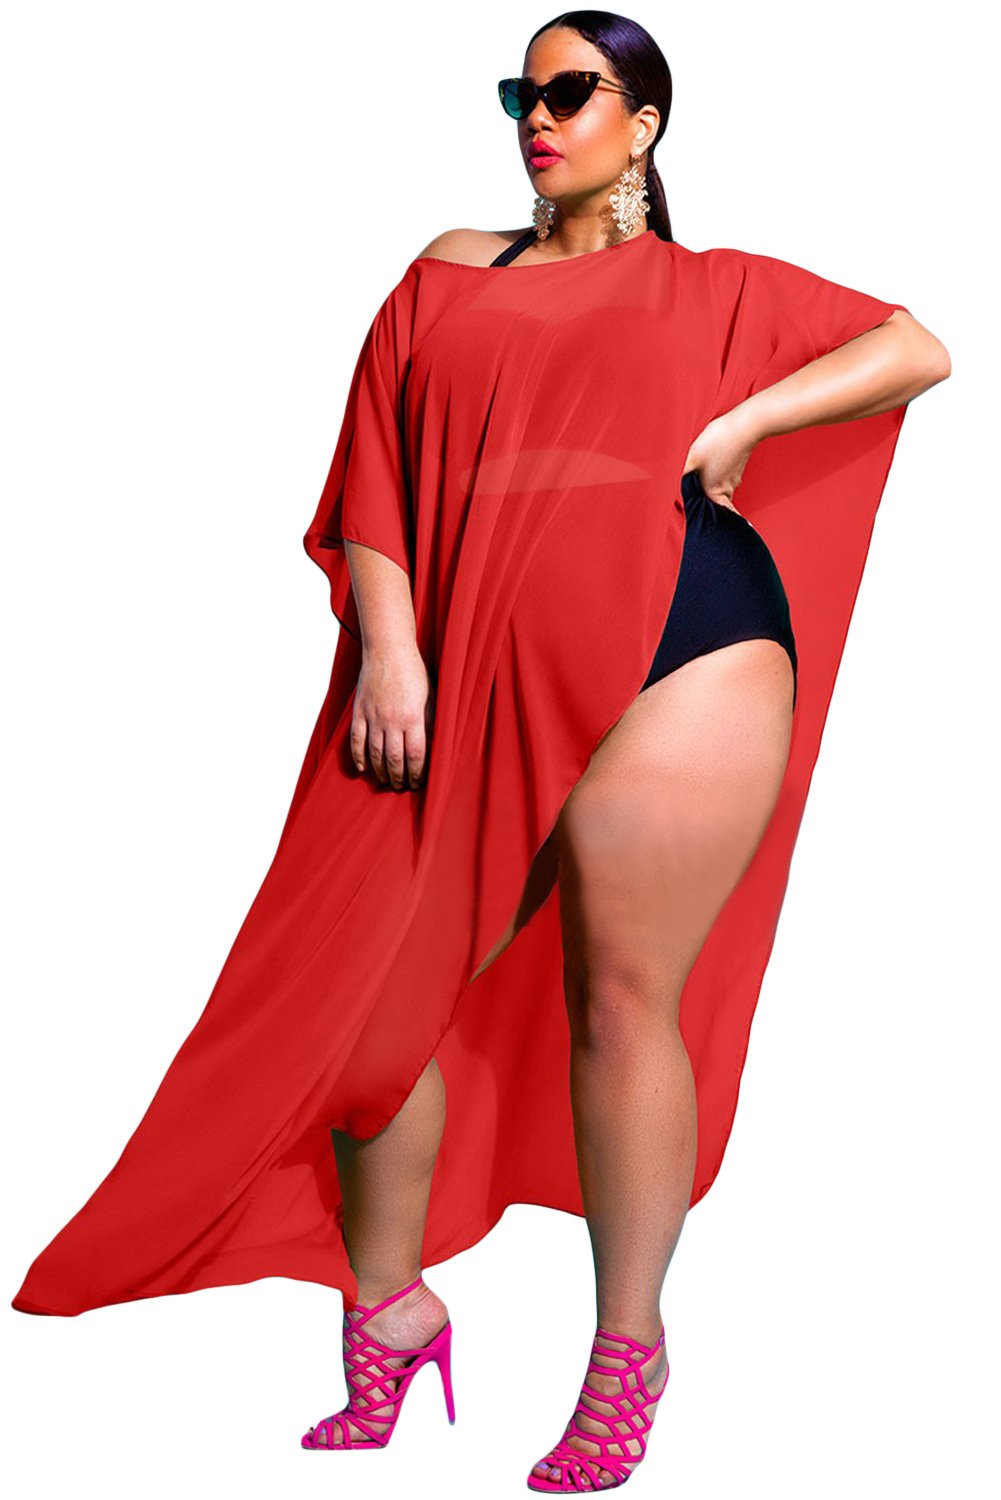 Prime Leader Red Draped Plus Size Cover-up(Red,one size)